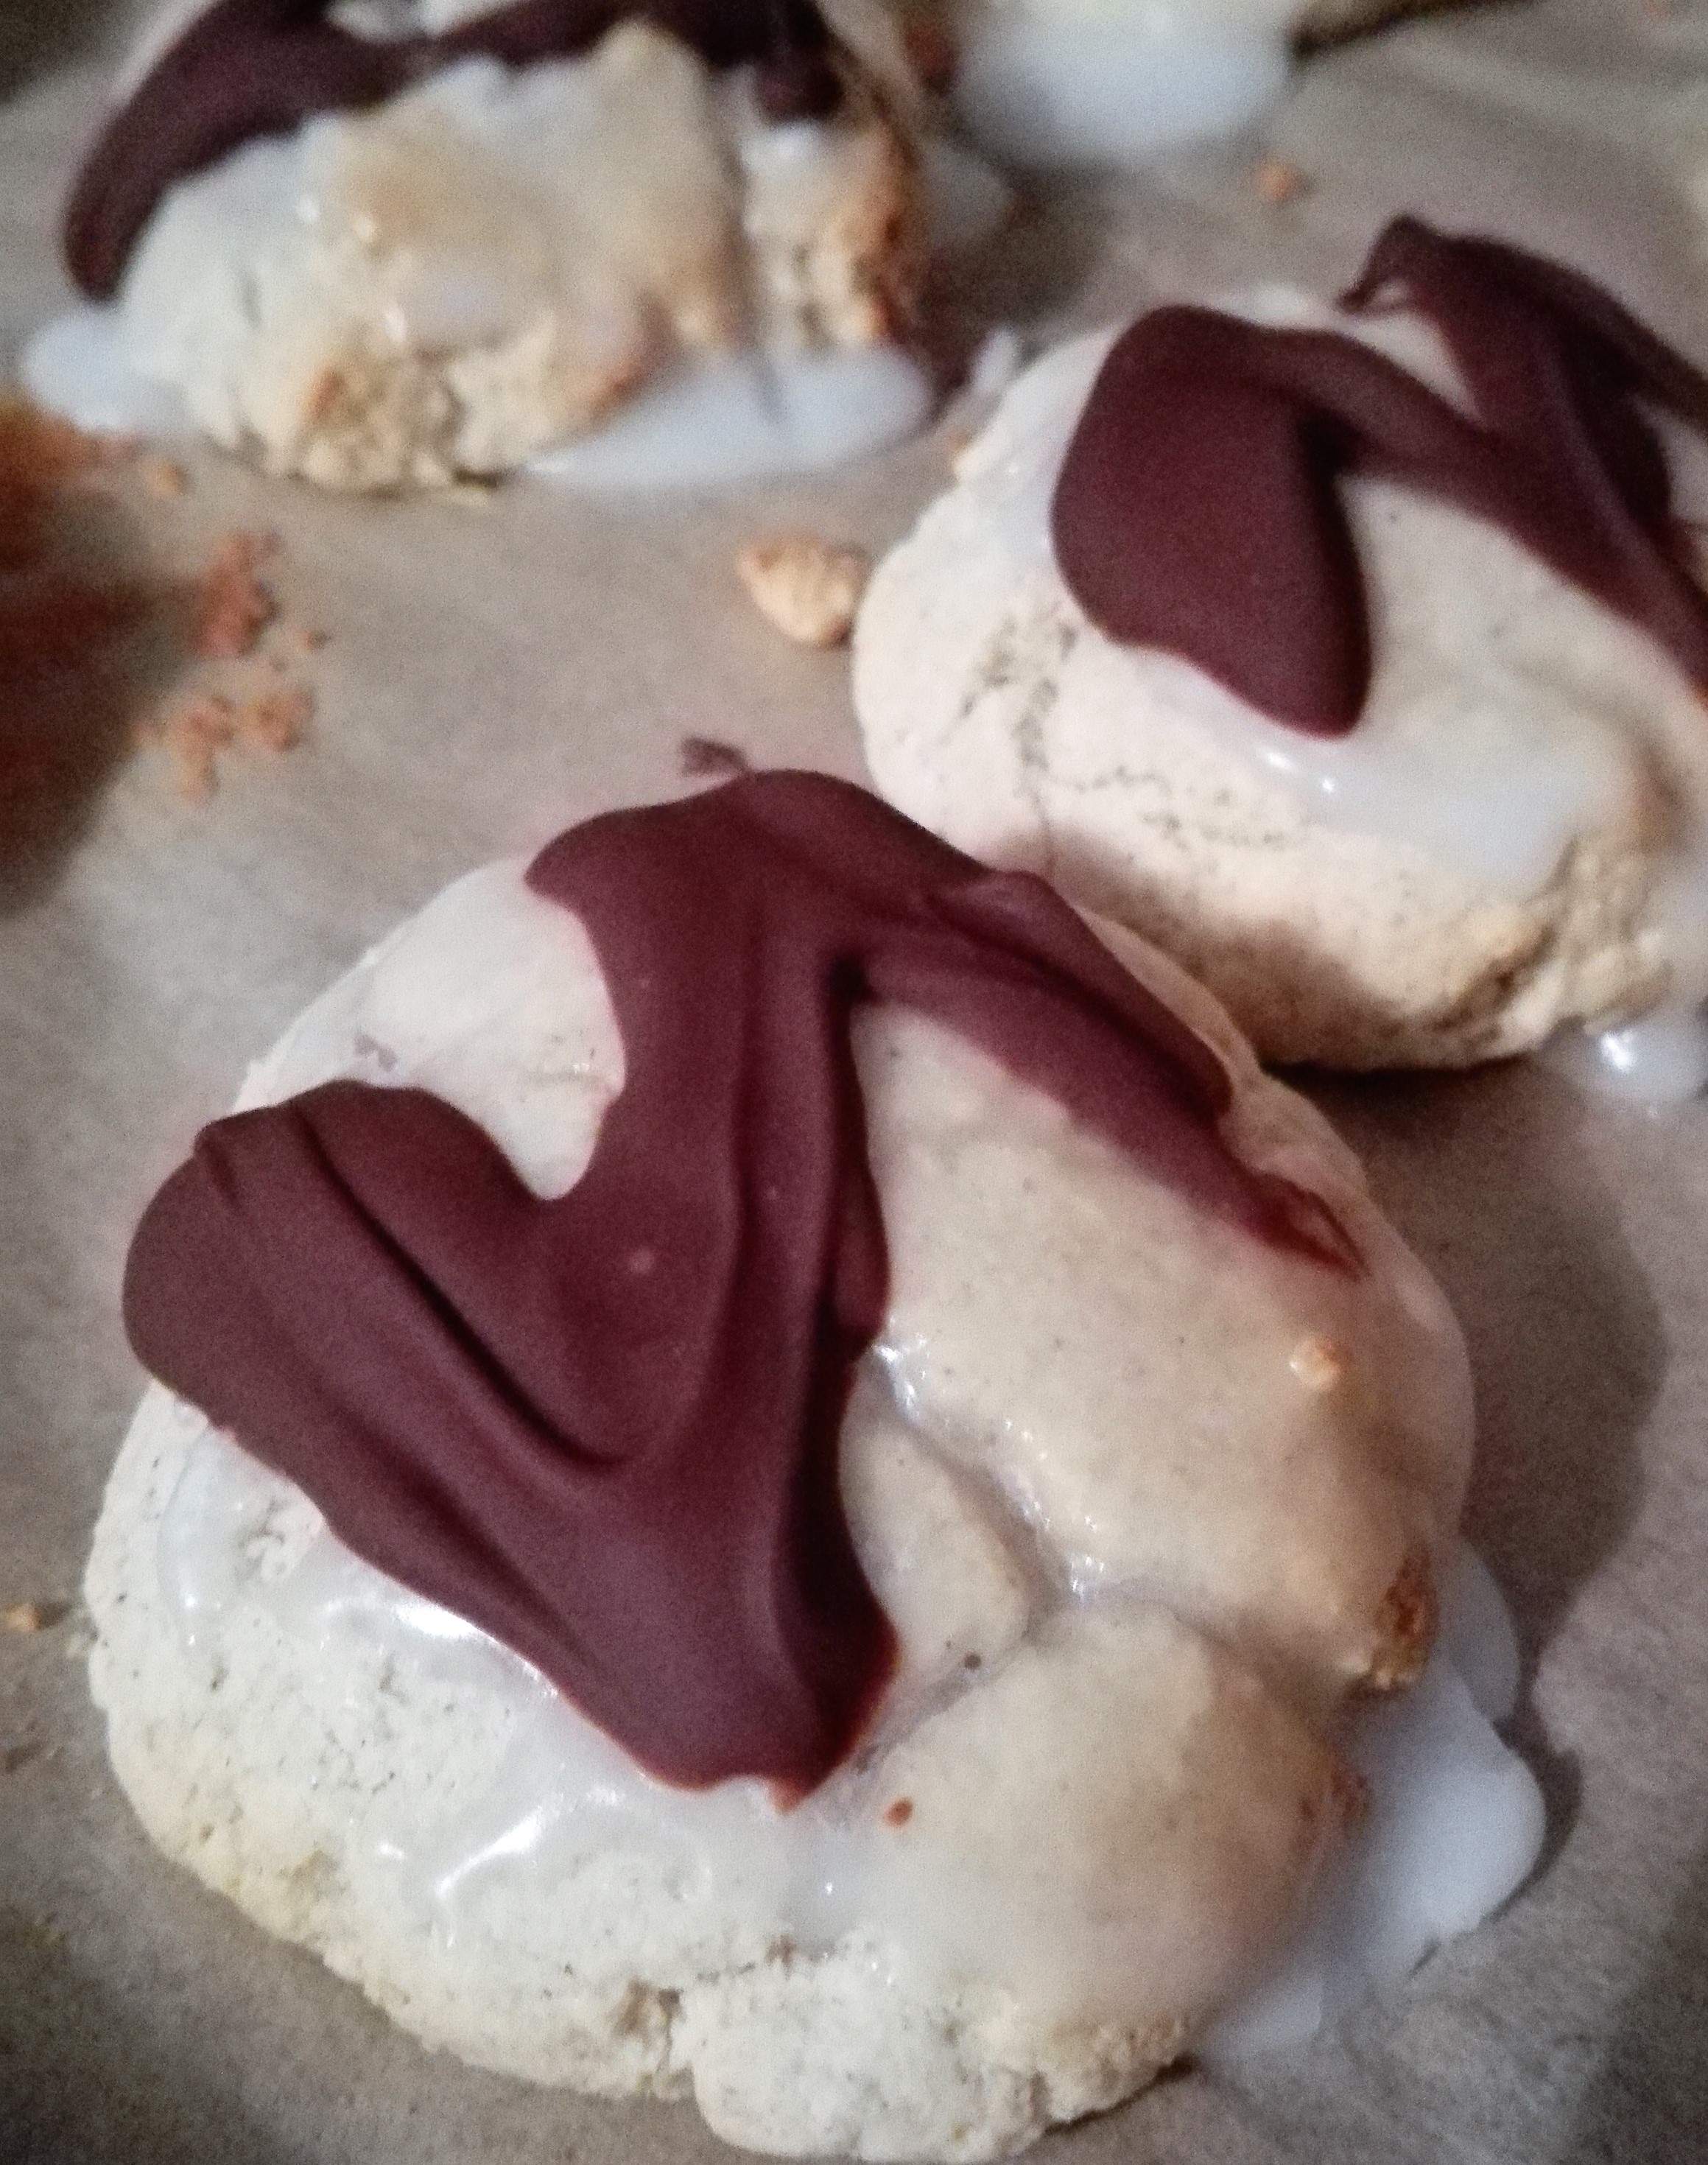 baked gluten free lebkuchen with icing and chocolate drizzle